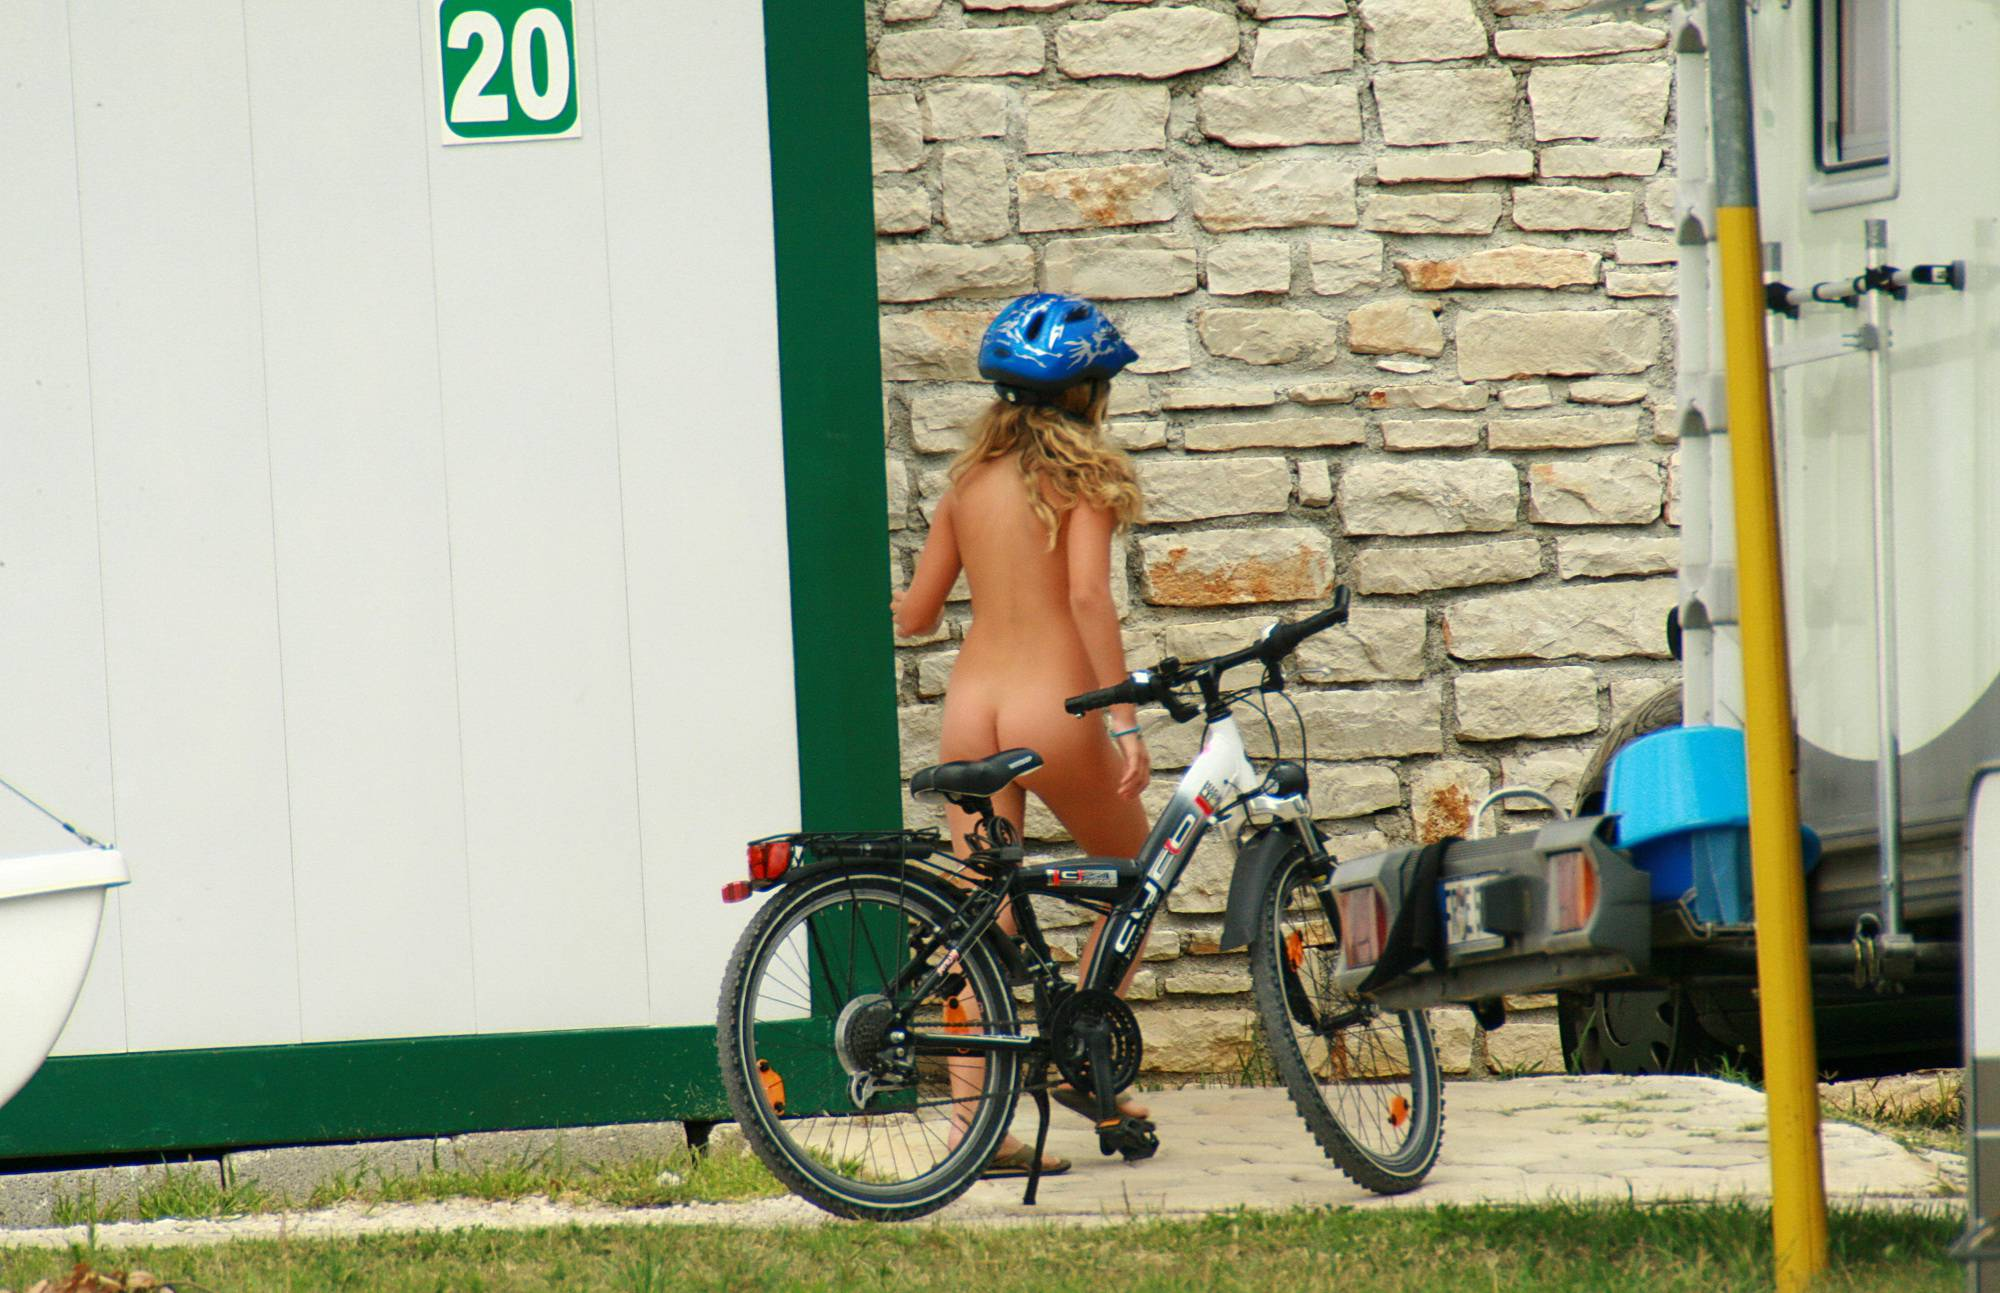 Pure Nudism Pics-Bike Riding All Day Long - 1